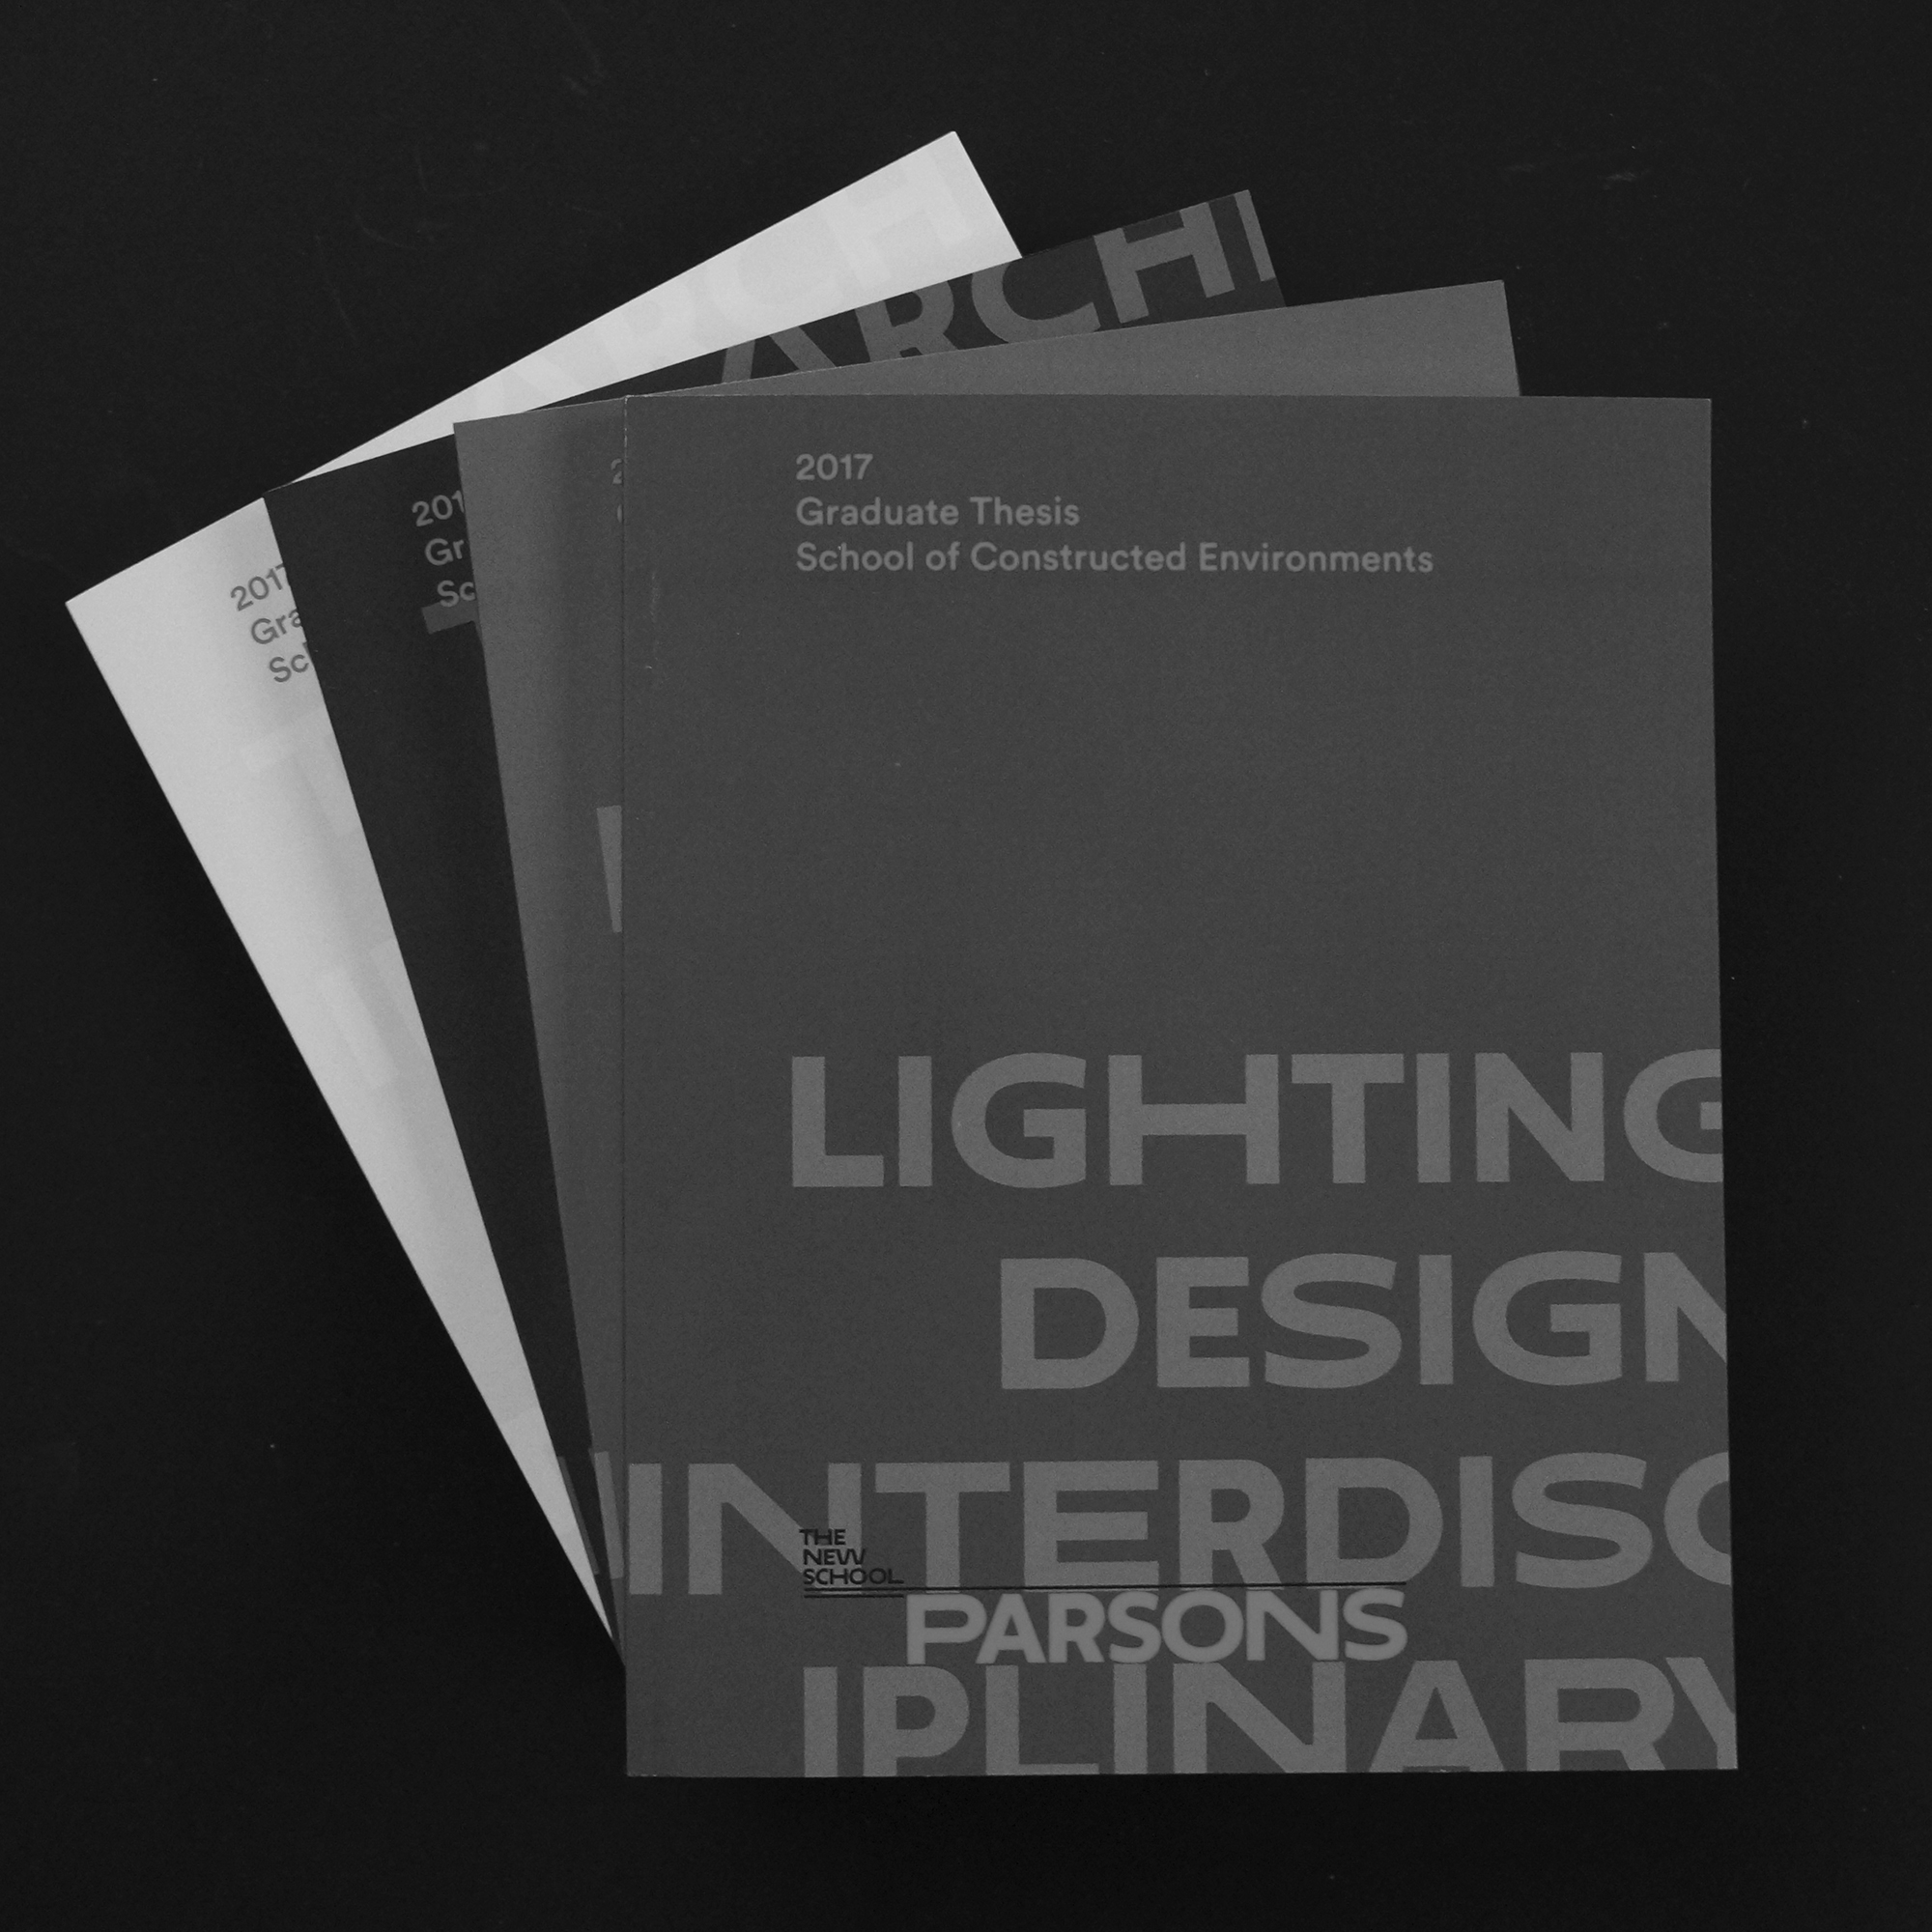 Parsons SCE 2017 Graduate Thesis     The 2017 Graduate Thesis book presents student work from Parsons School of Constructed Environments Architecture, Lighting, Interior Design, and Interdisciplinary programs.